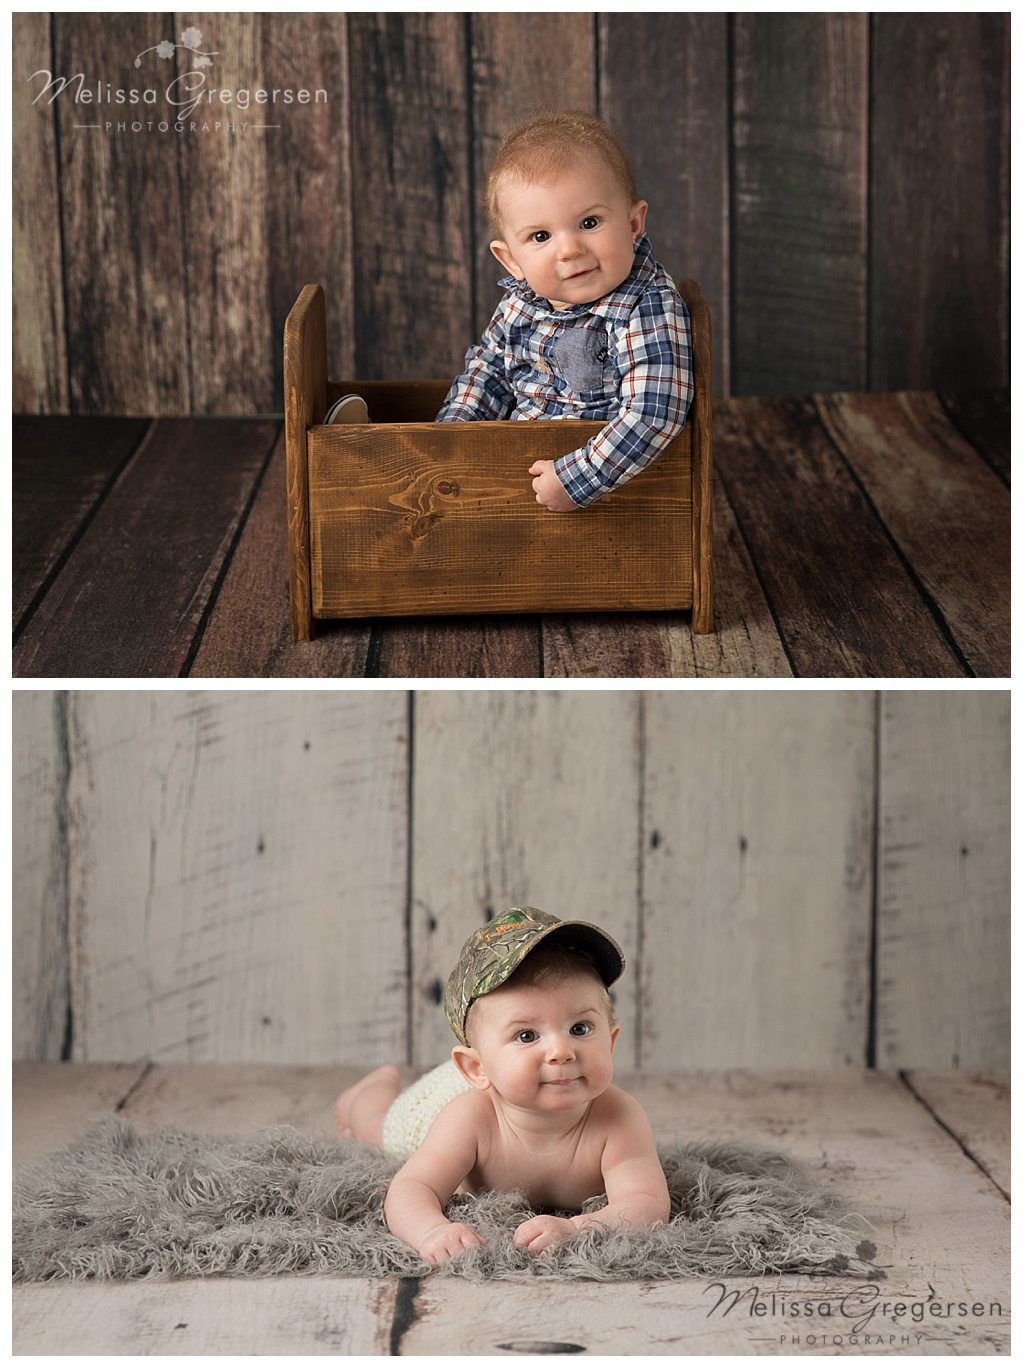 Kalamazoo Michigan baby photographer Gregersen Photography, LLC